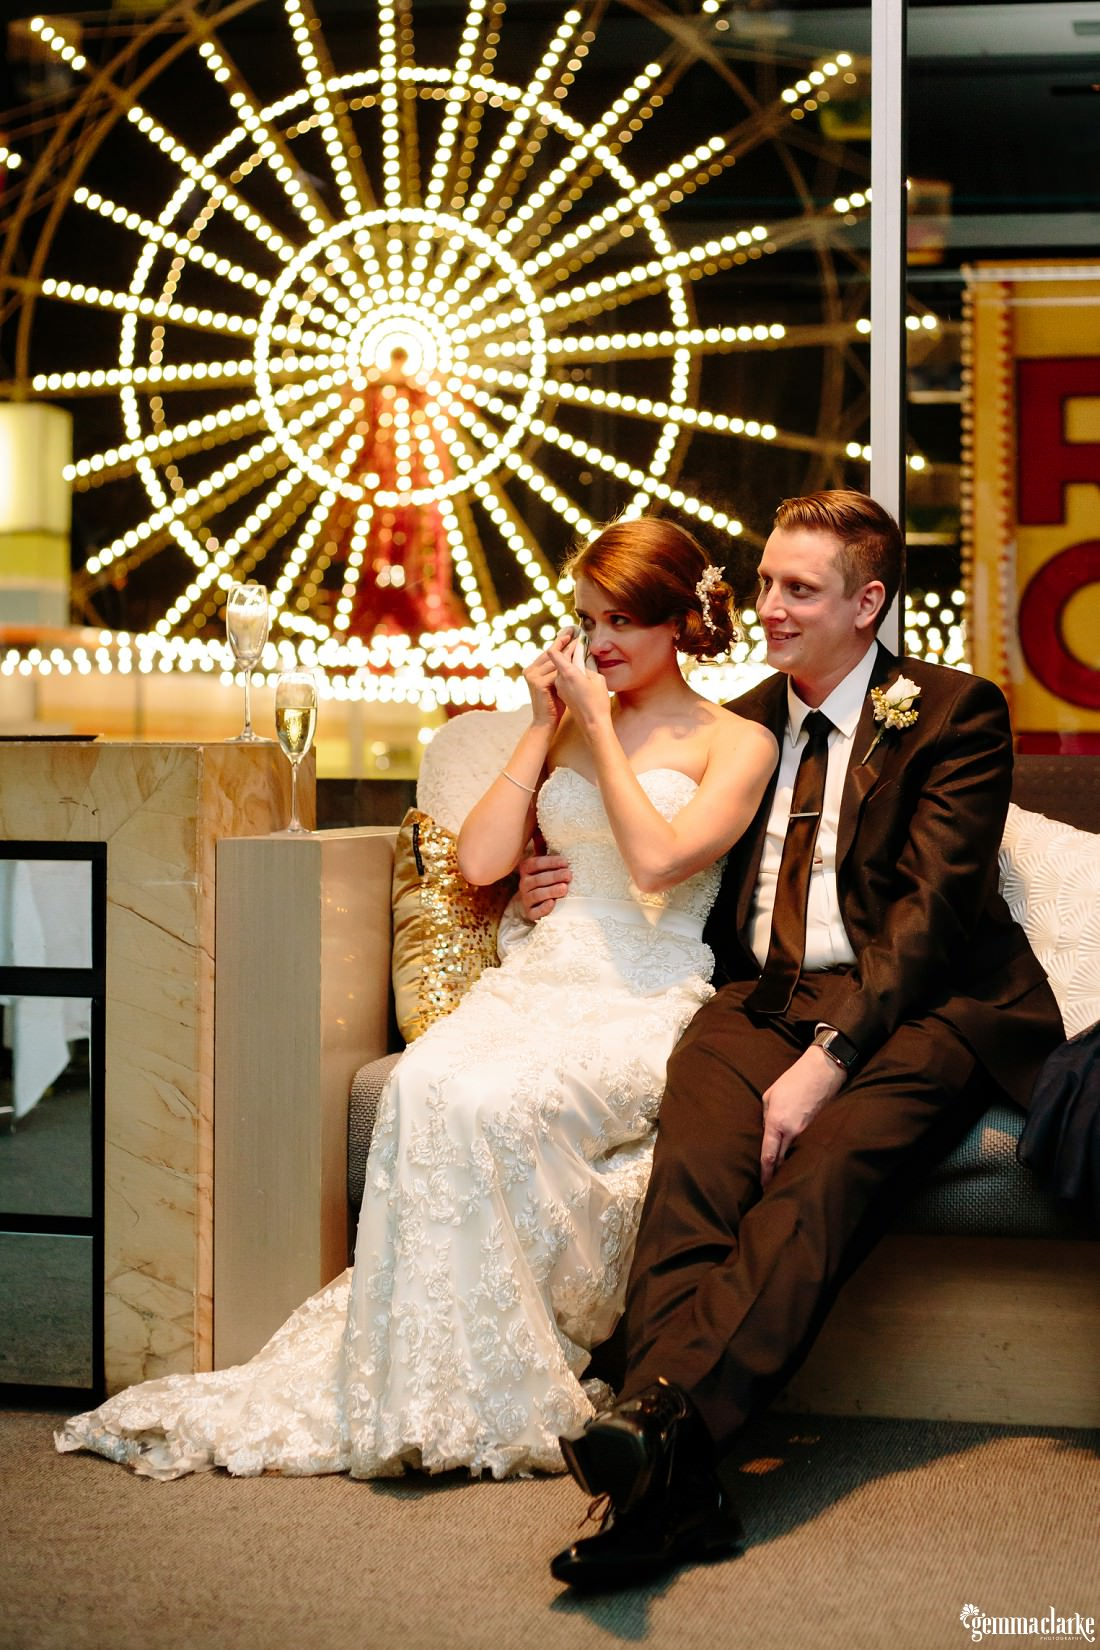 A bride wipes a tear from her eye as her groom holds her close, with the Luna Park Ferris wheel behind through the window